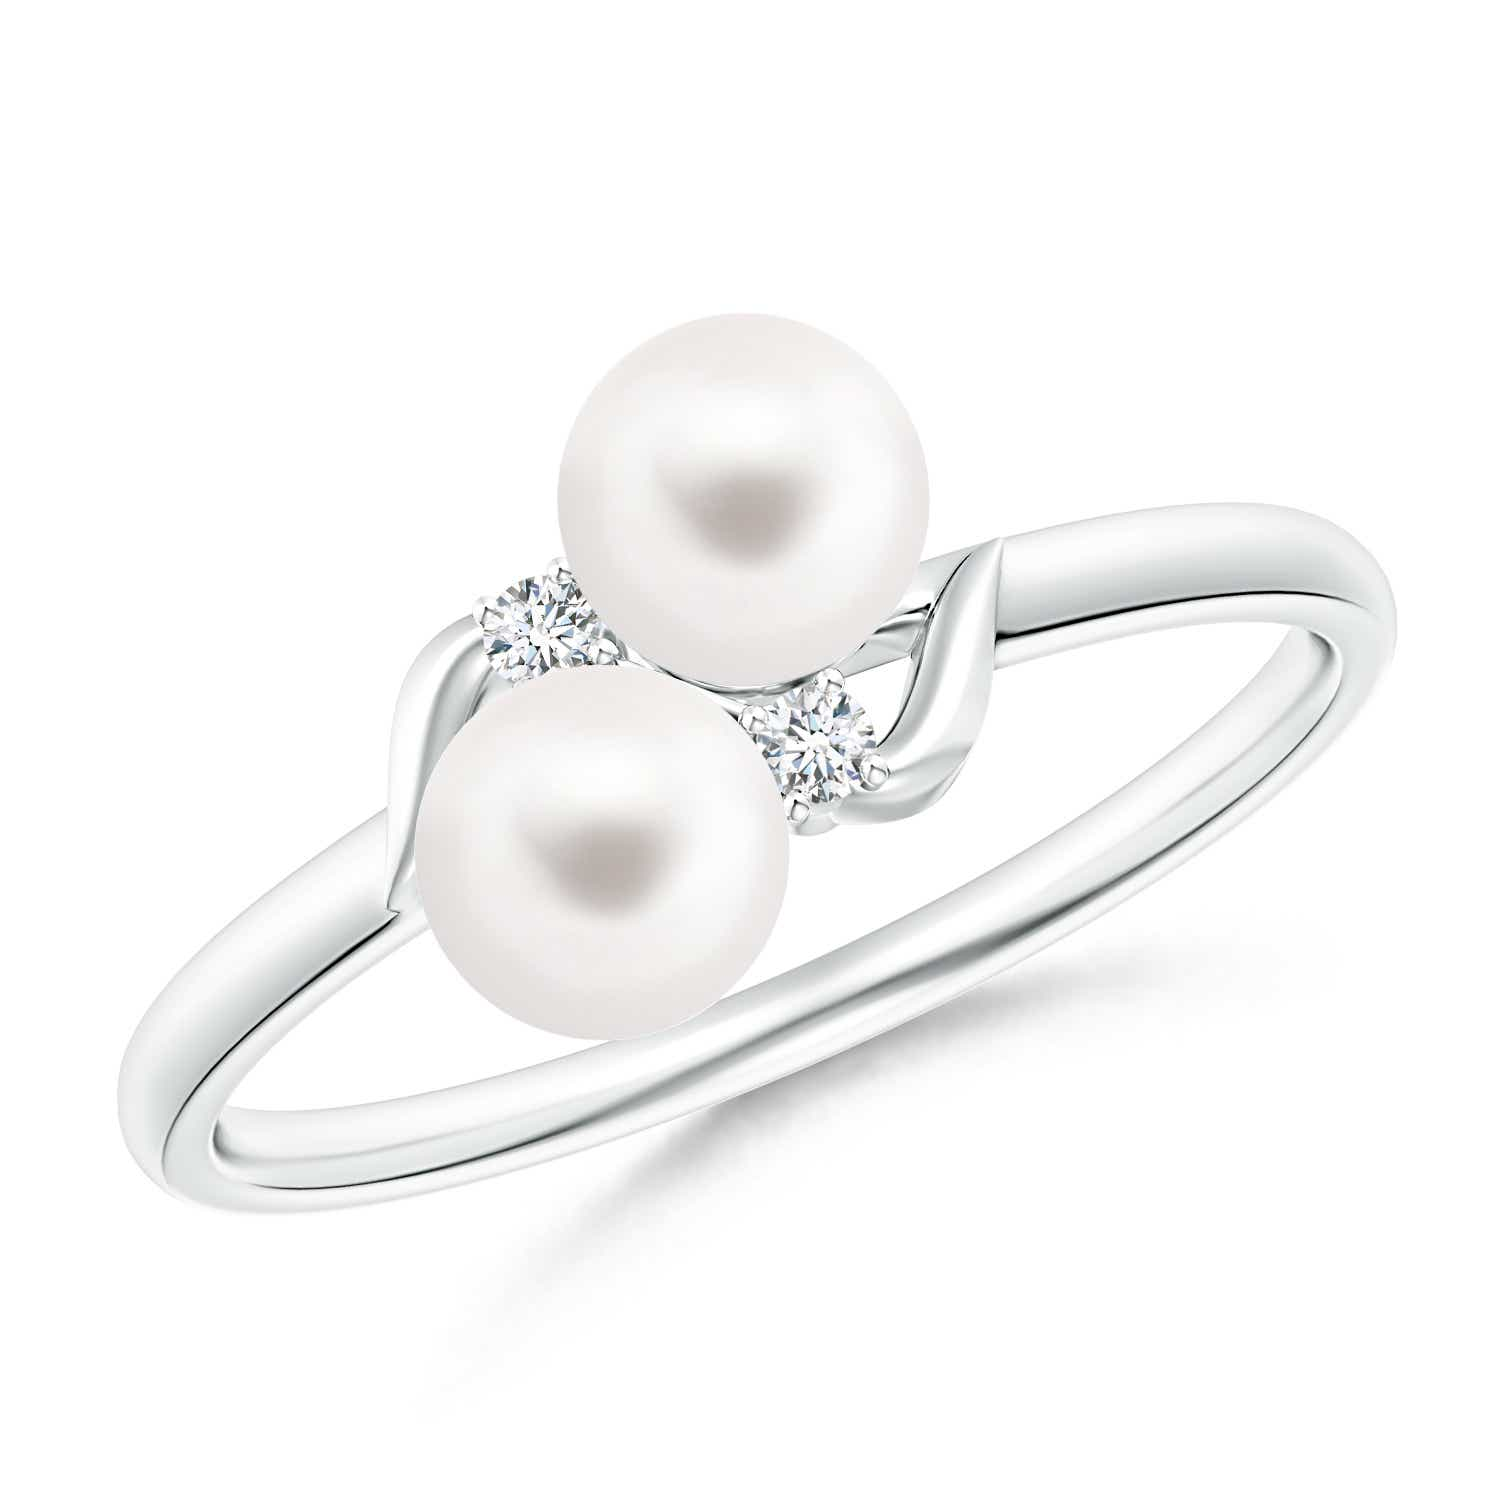 Angara Dual Freshwater Cultured Pearl Ring with Diamond Accents qiYIqY